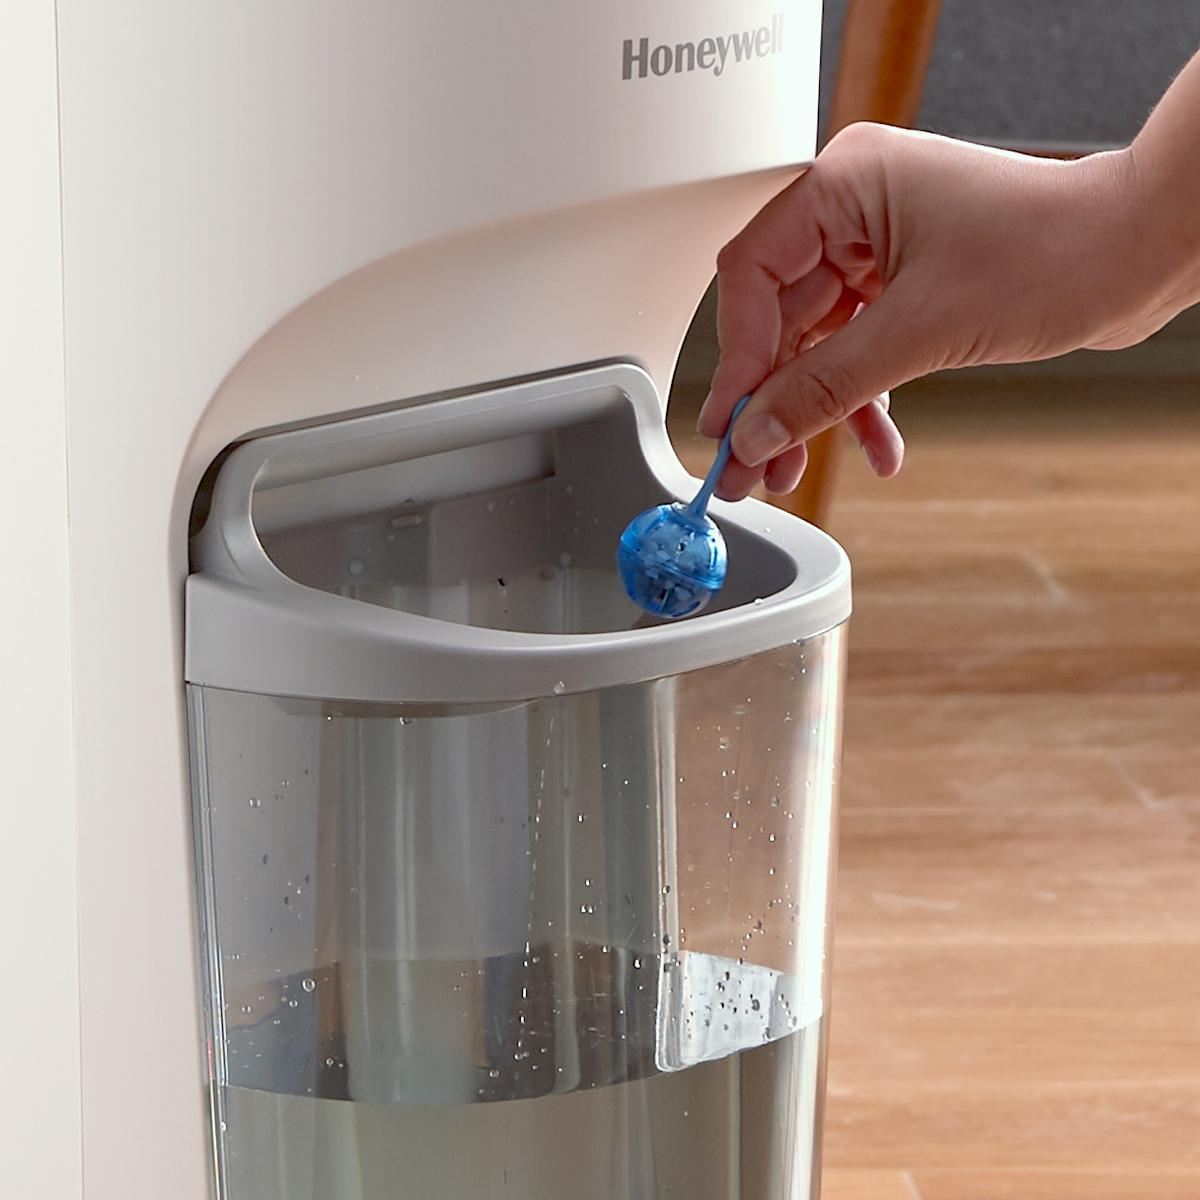 How to clean honeywell humidifier hcm 350